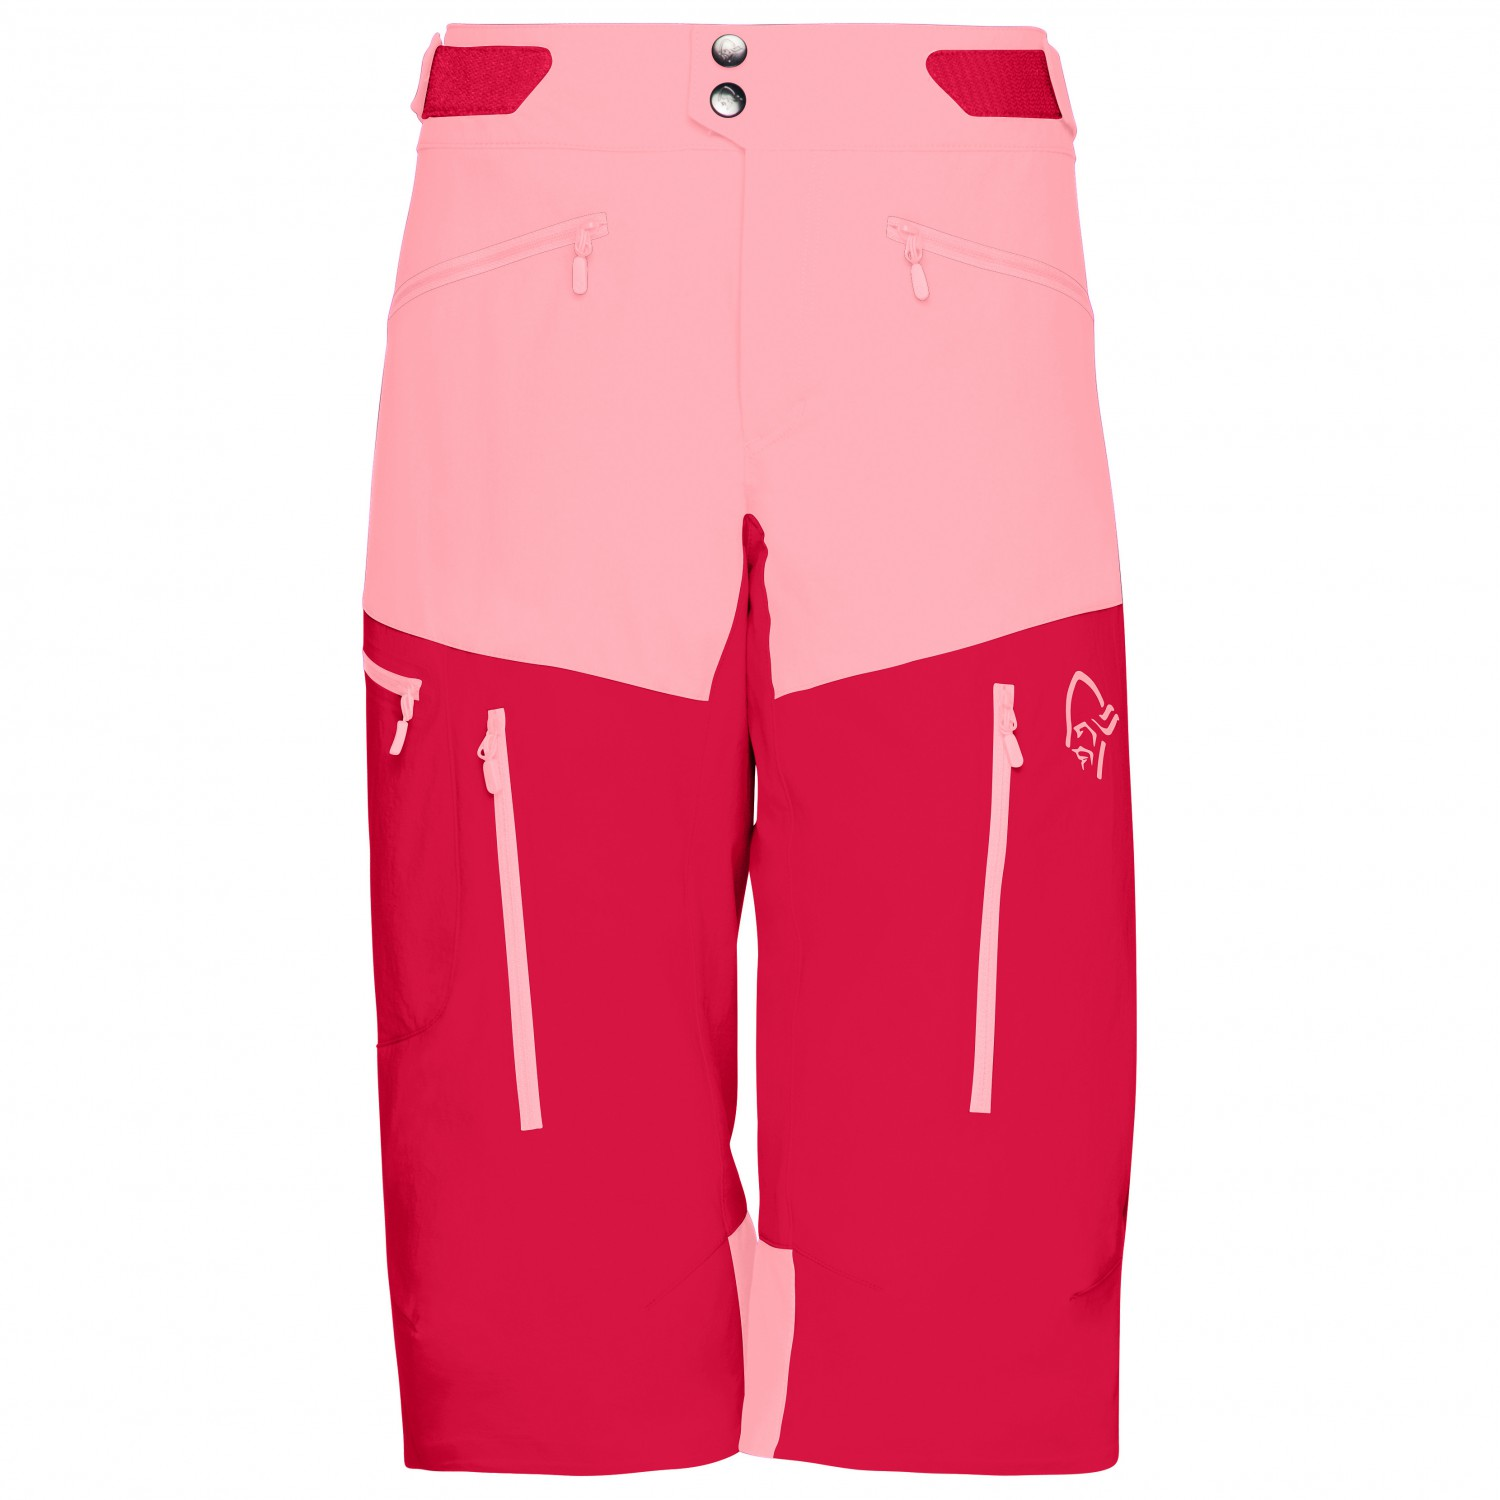 10c0a9fd Norrøna Fjørå Flex1 Shorts - Cycling Bottoms Women's | Free UK ...